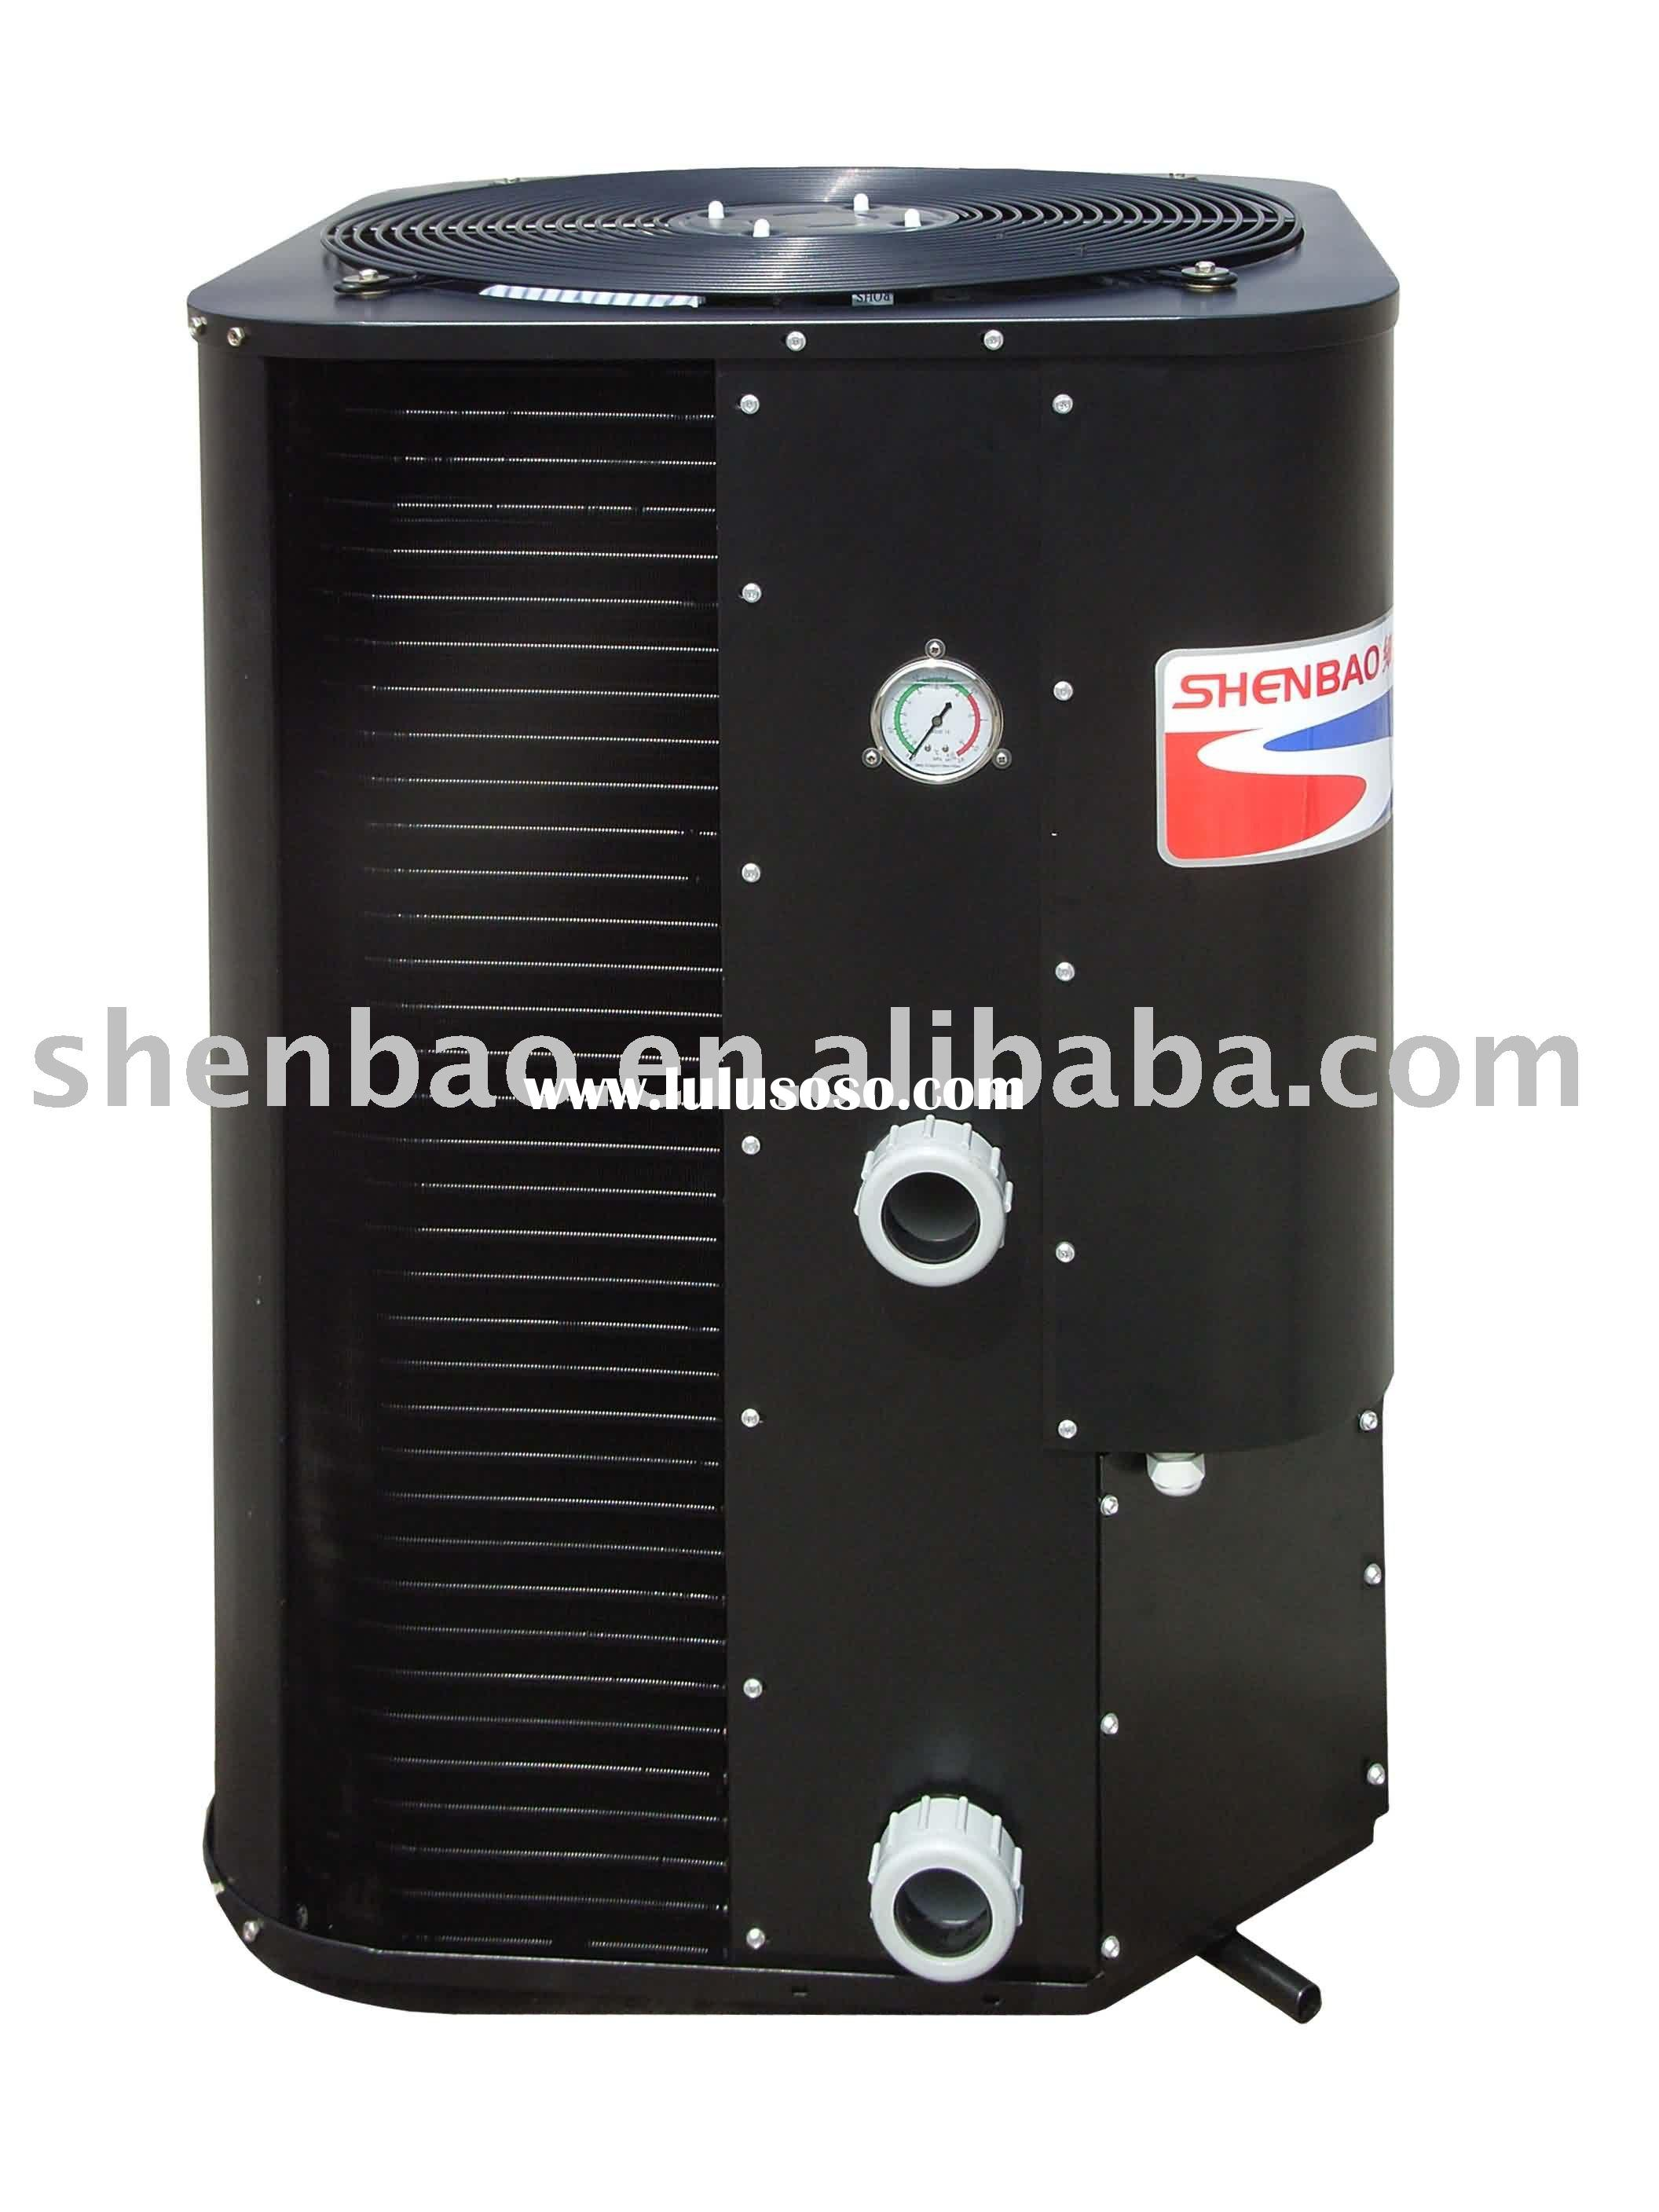 2010 Swimming Pool Heat Pump Heater & Chiller